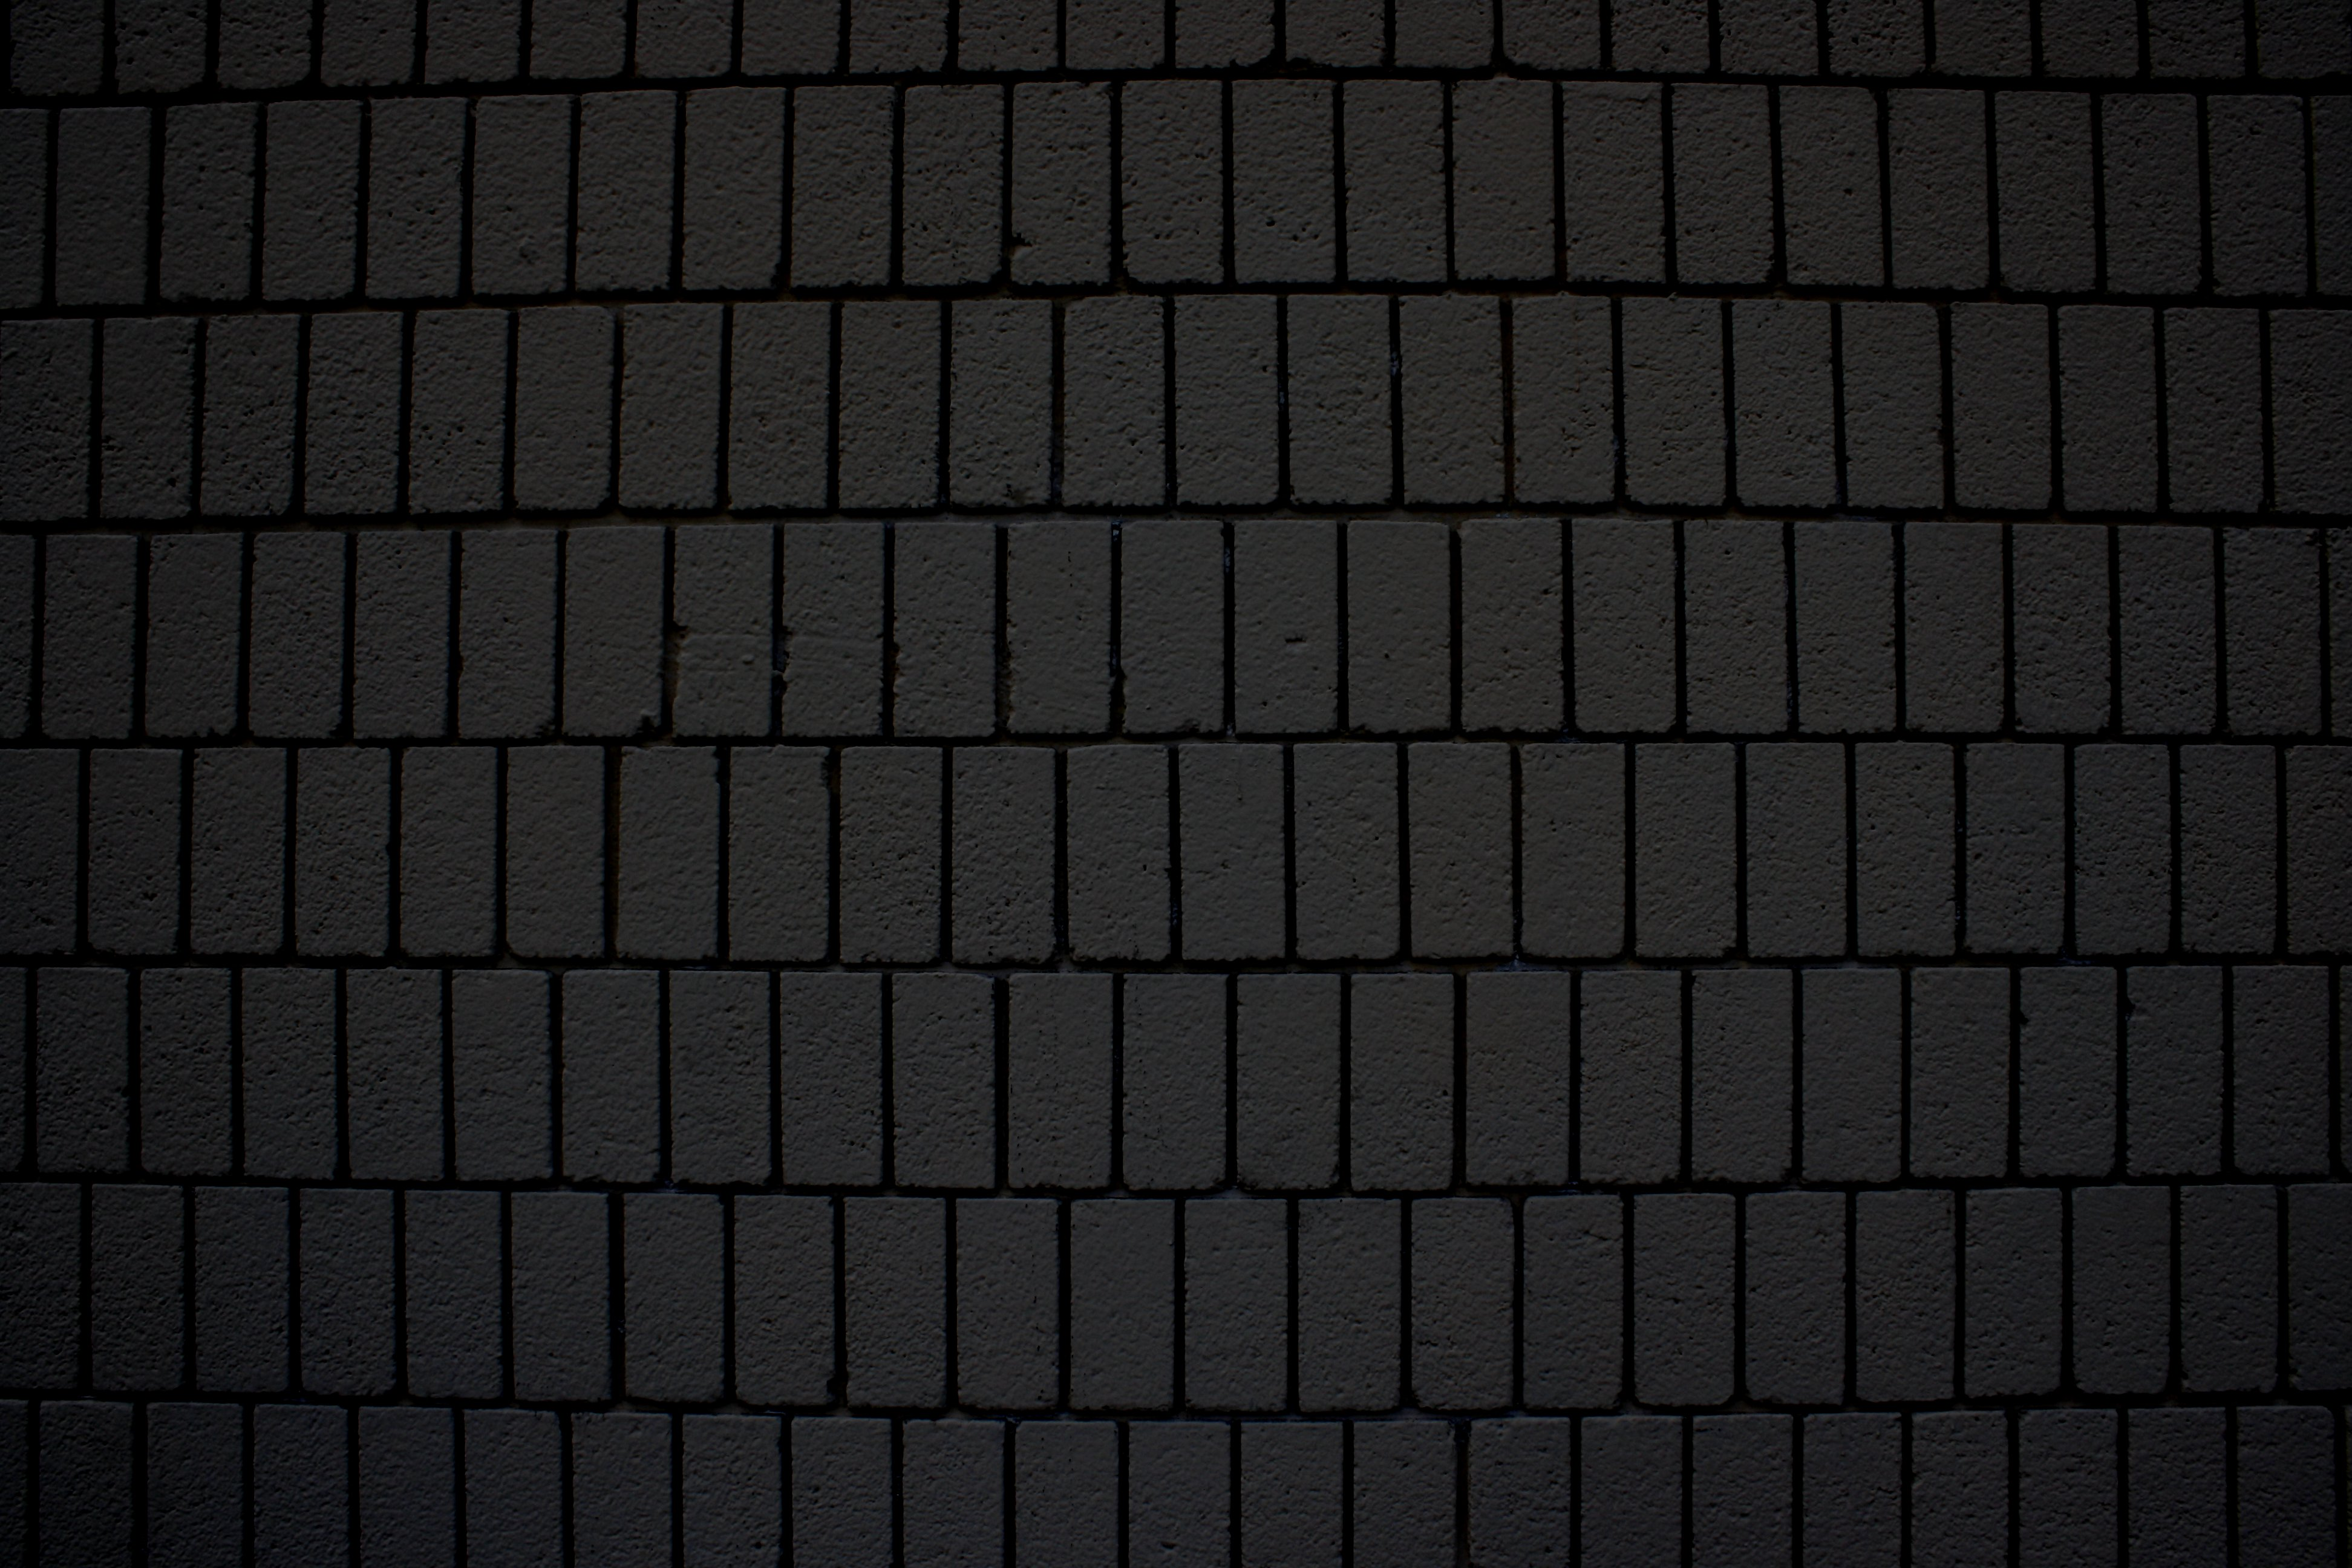 Black Brick Wall Texture with Vertical Bricks Picture ...